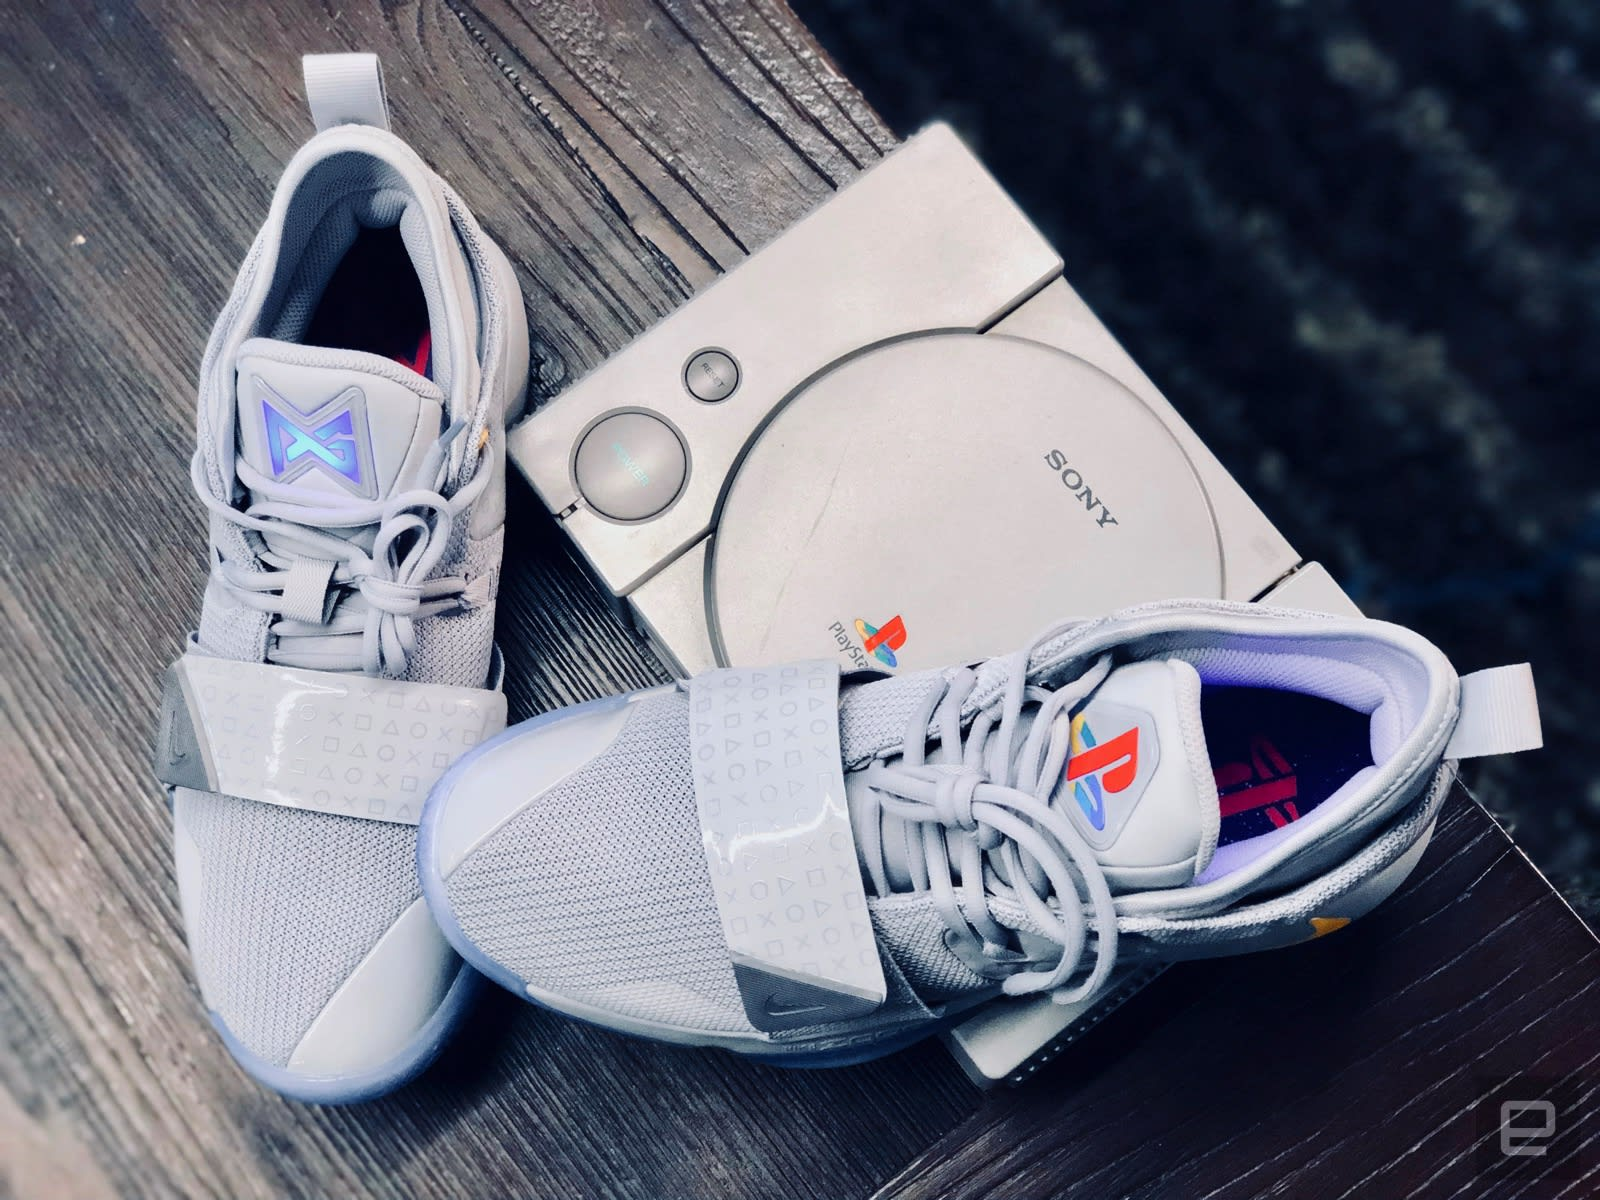 best sneakers 7ff05 fcc6b Nike's new PlayStation sneakers pay homage to Sony's classic ...